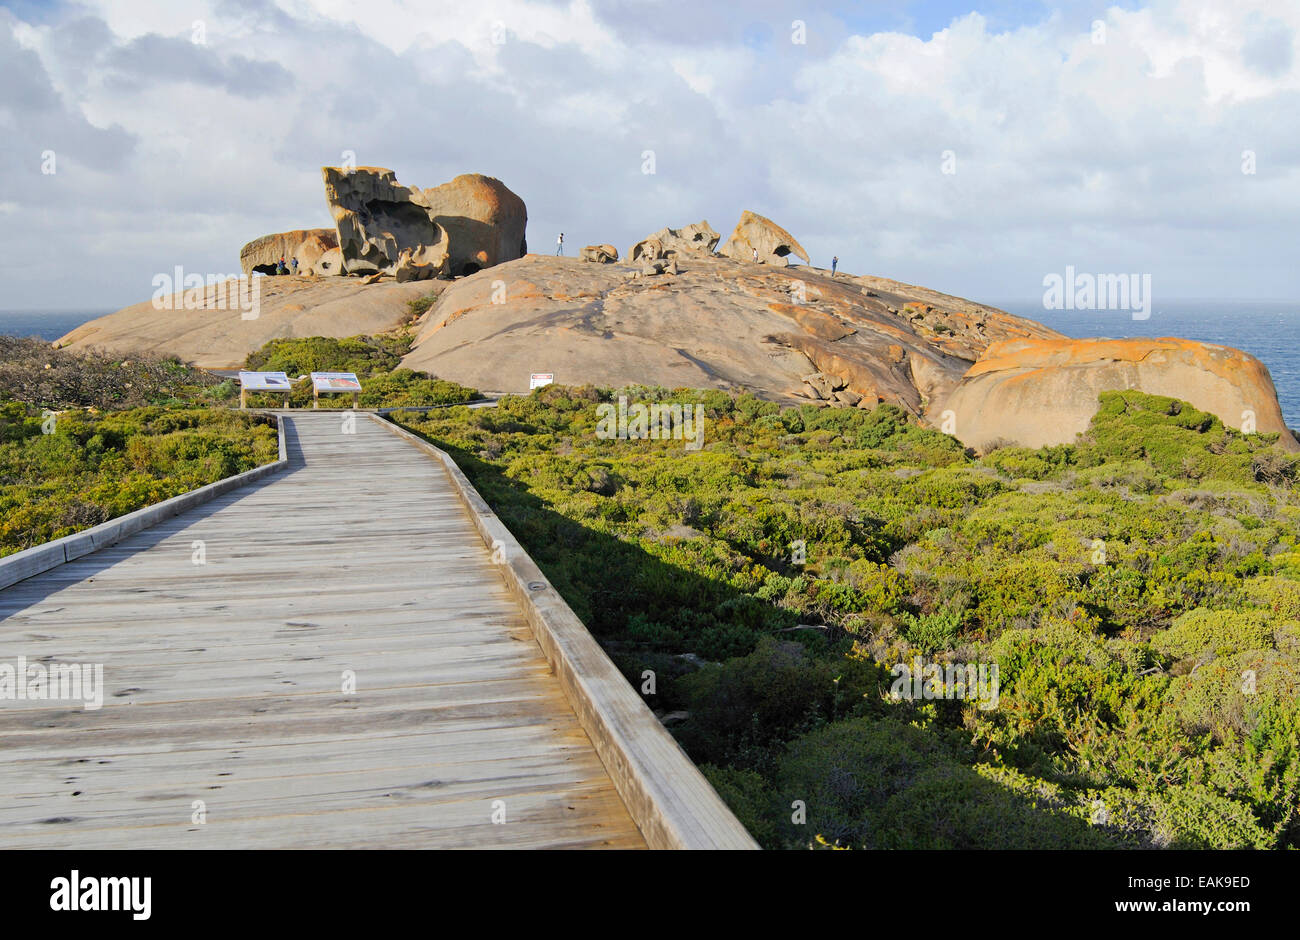 Remarkable Rocks, Flinders-Chase-Nationalpark, Kangaroo Island, South Australia, Australia - Stock Image